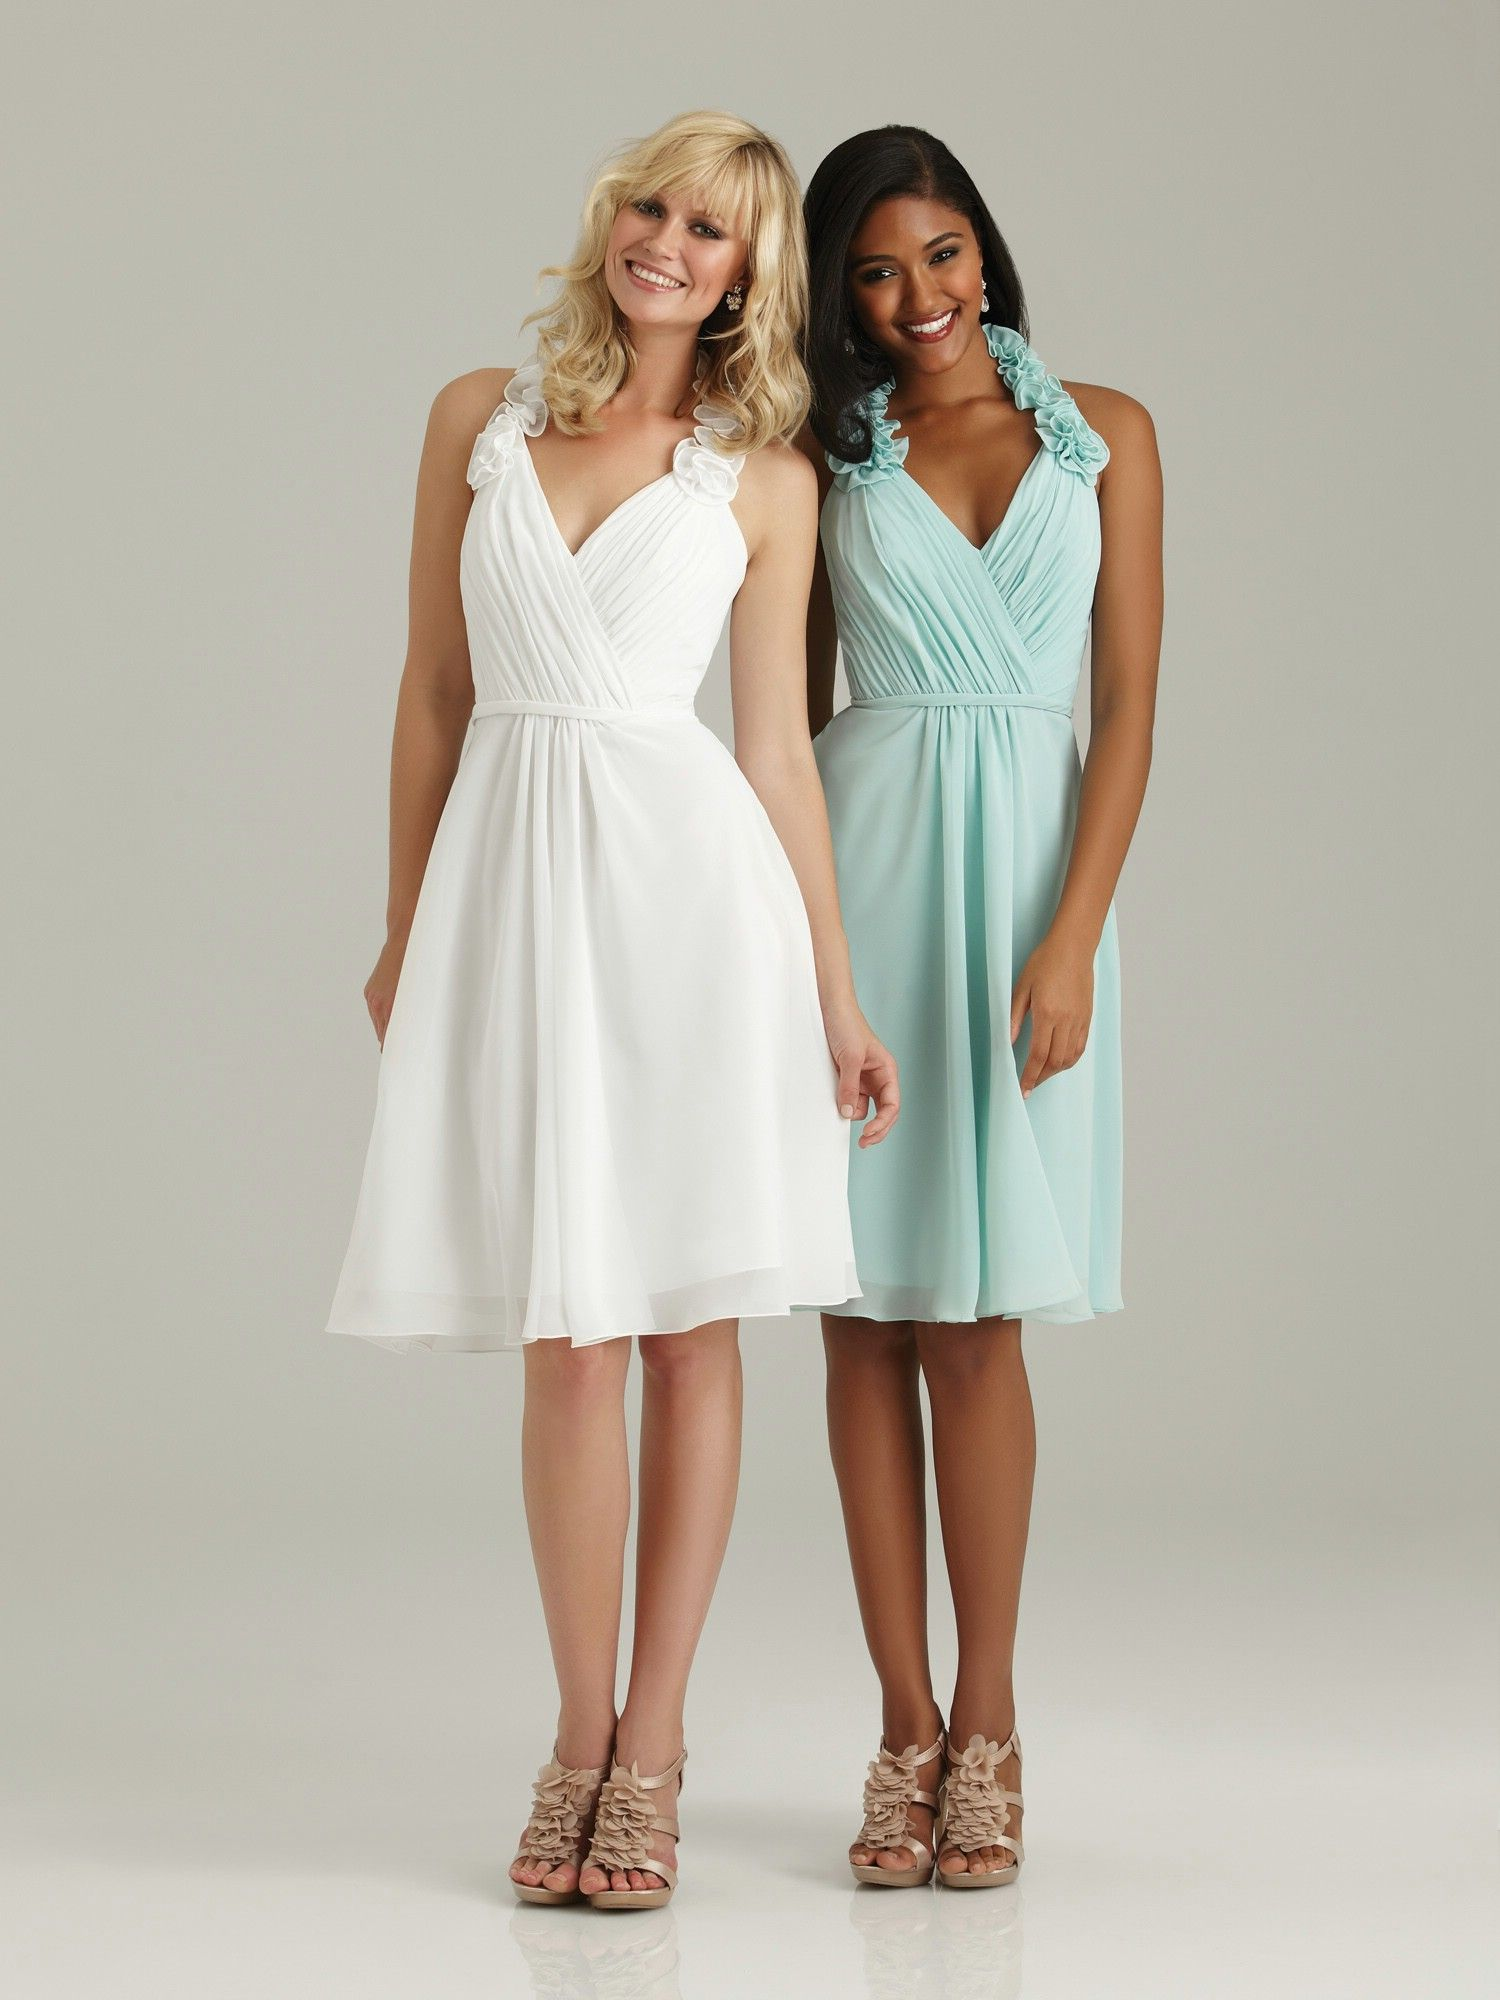 Allure bridesmaid dresses style 1309 the mint peach wedding allure bridesmaid dresses style 1309 ombrellifo Gallery